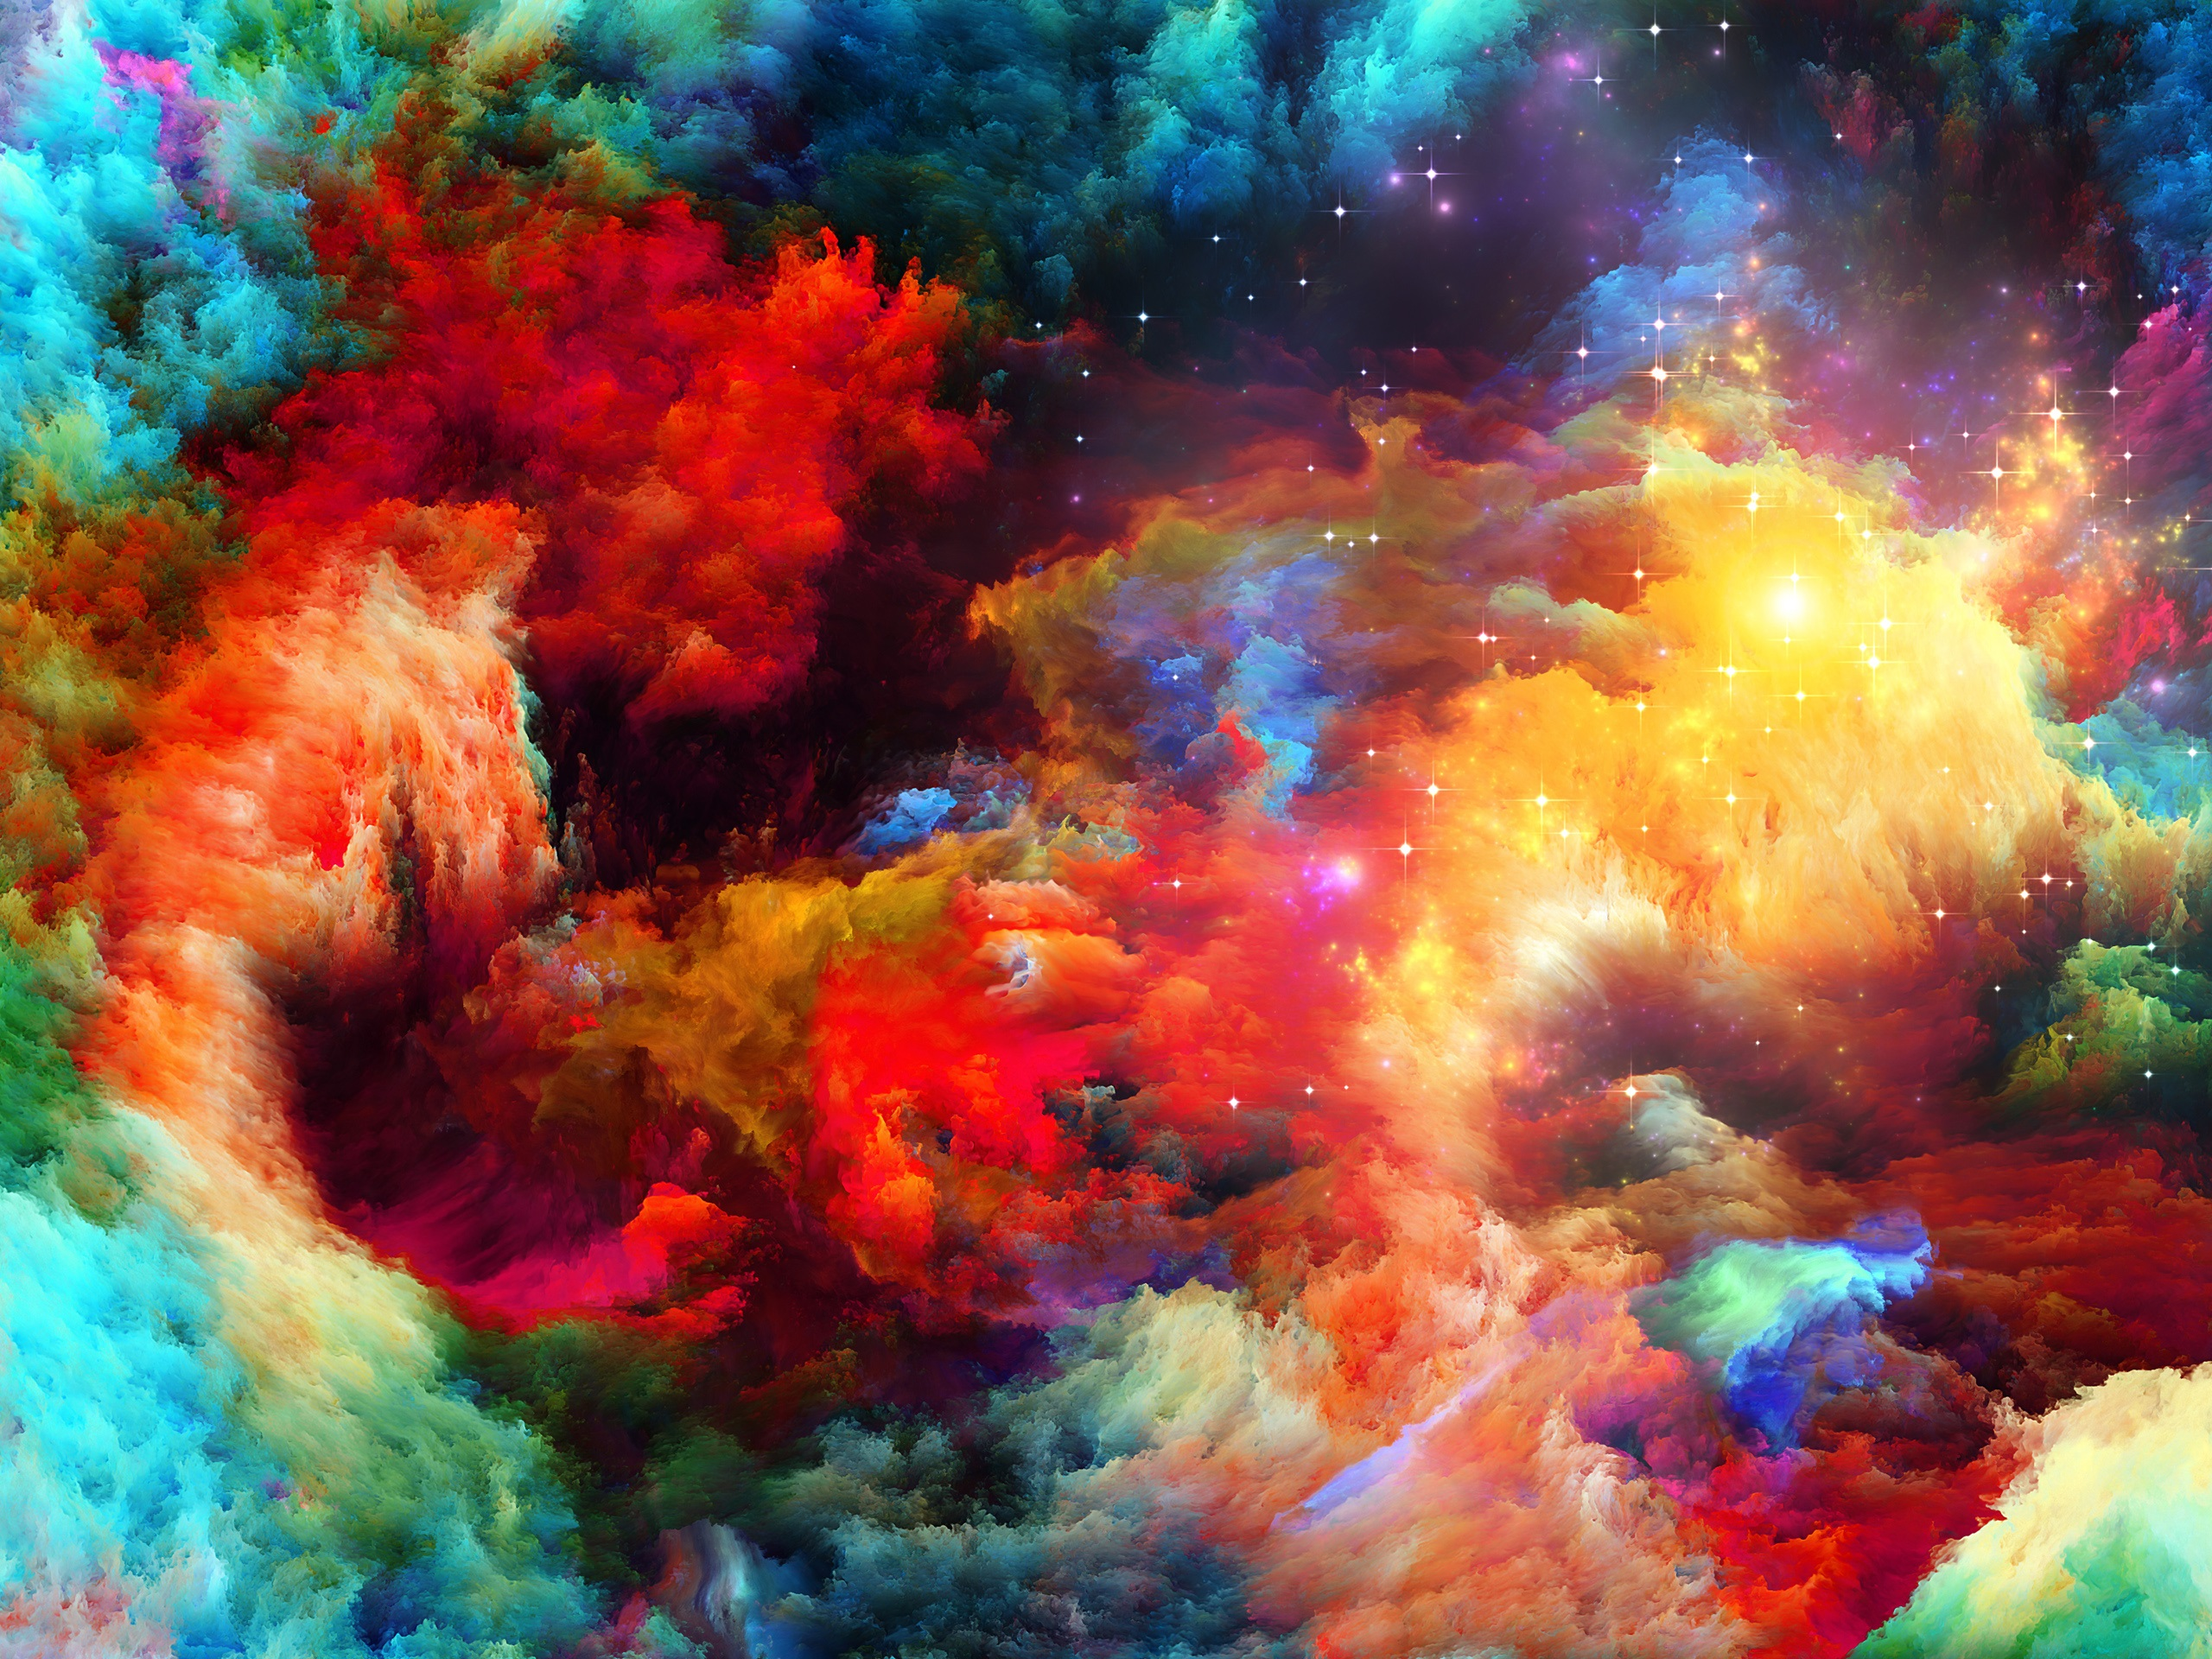 wallpaper colorful space, abstract design, stars 2560x1920 hd